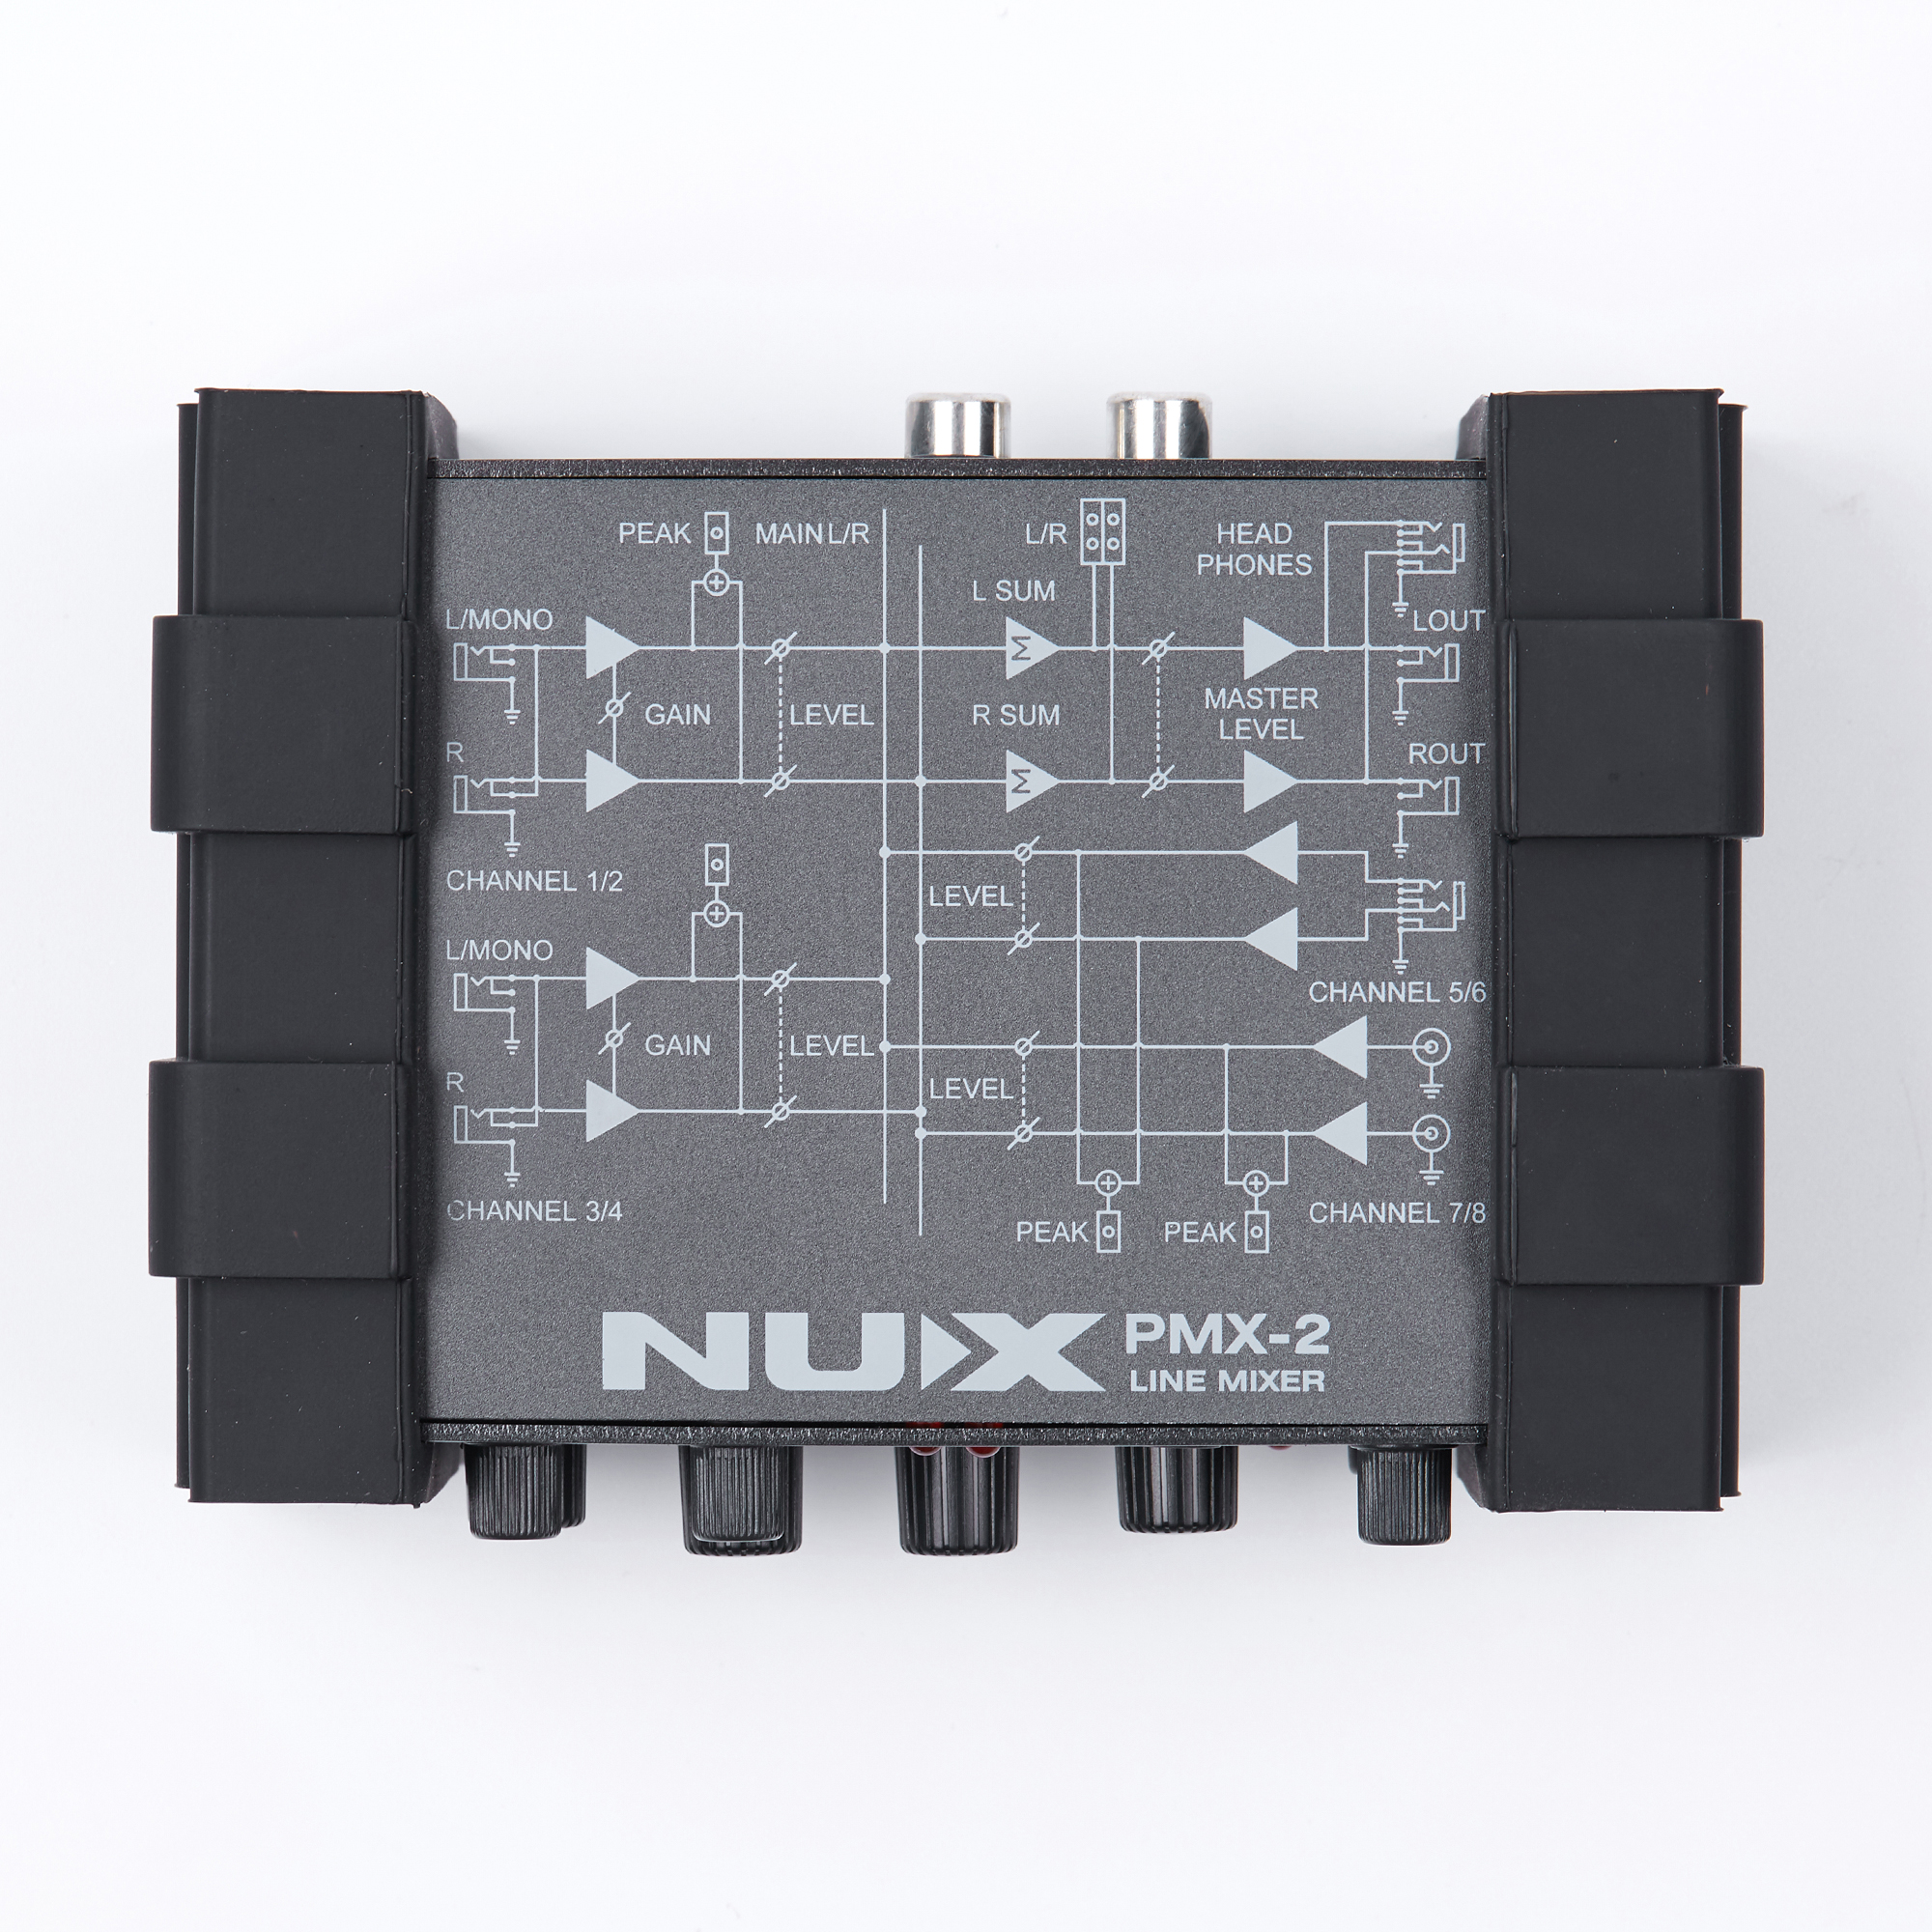 Gain Control 8 Inputs and 2 Outputs NUX PMX-2 Multi-Channel Mini Mixer 30 Musical Instruments Accessories for Guitar Bass Player kylin embroidery raglan sleeve sukajan jacket